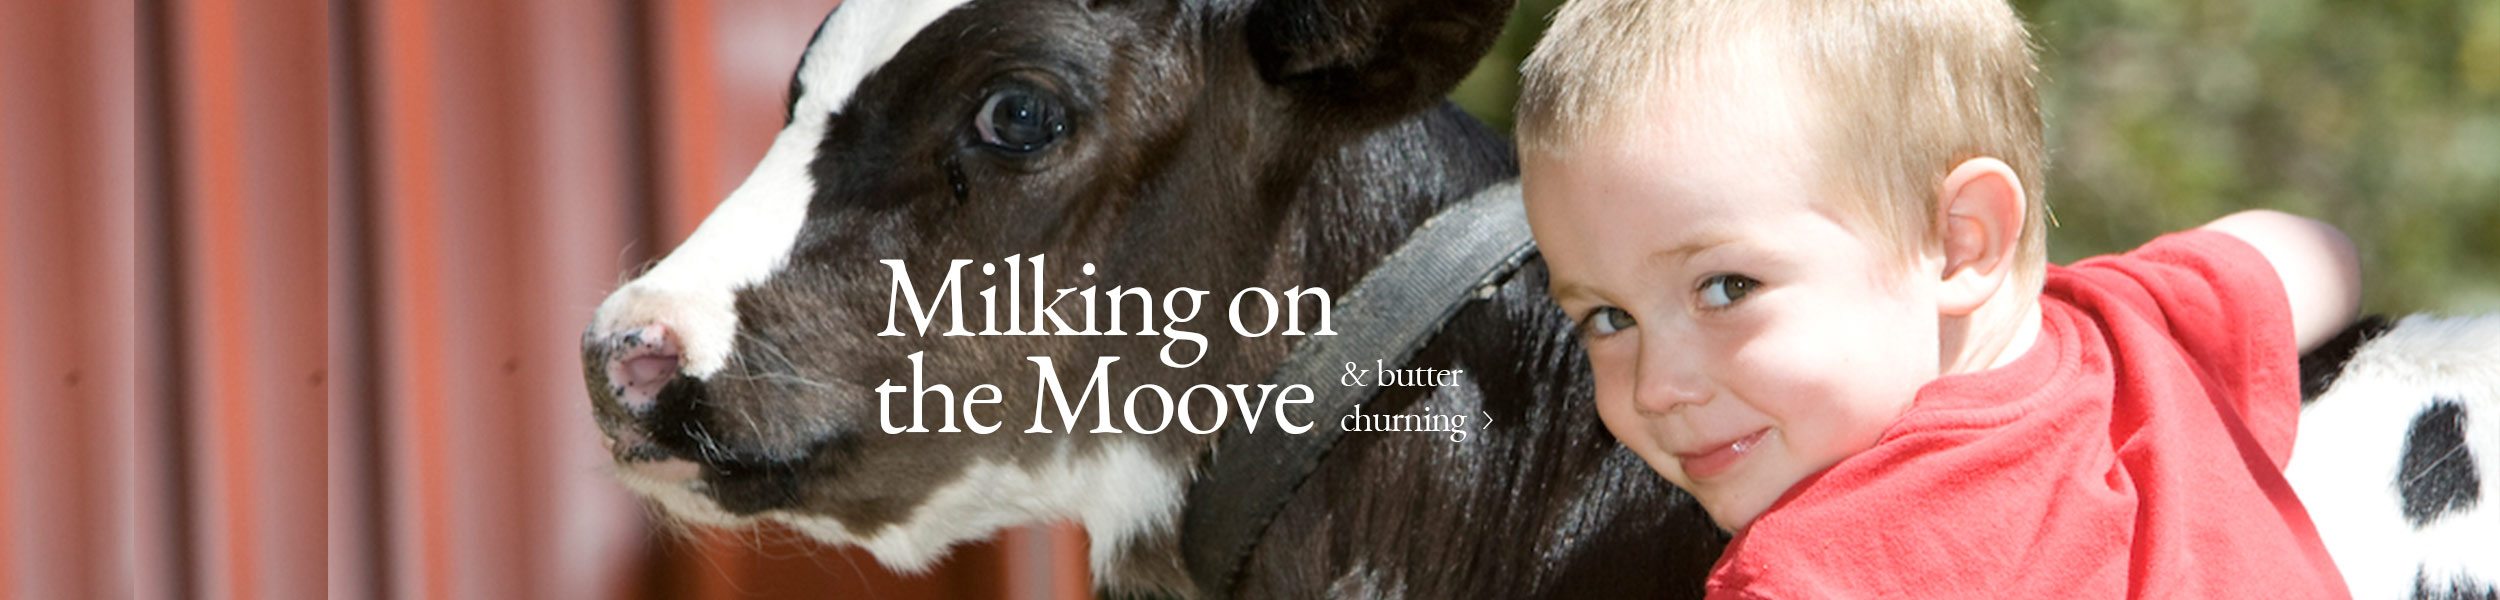 HP-milking_on_the_move-1